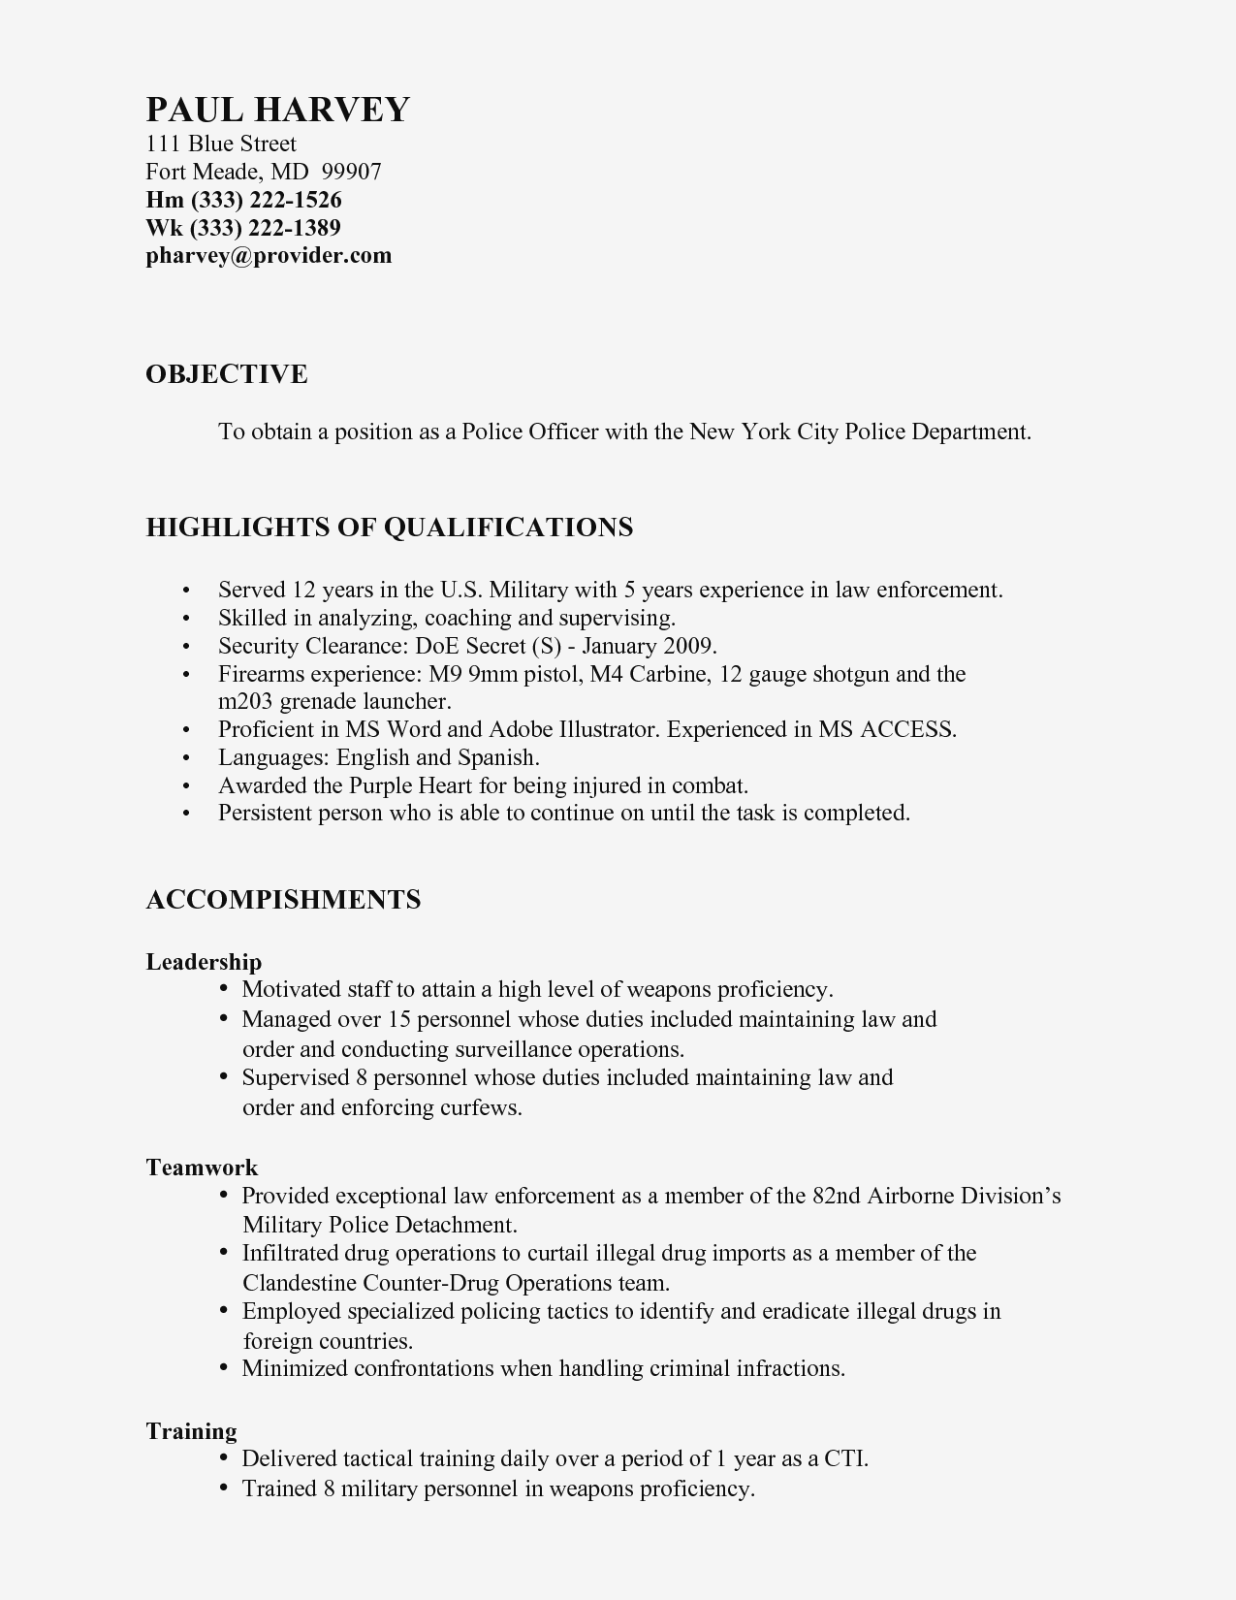 Police Officer resume templates, police officer resume templates